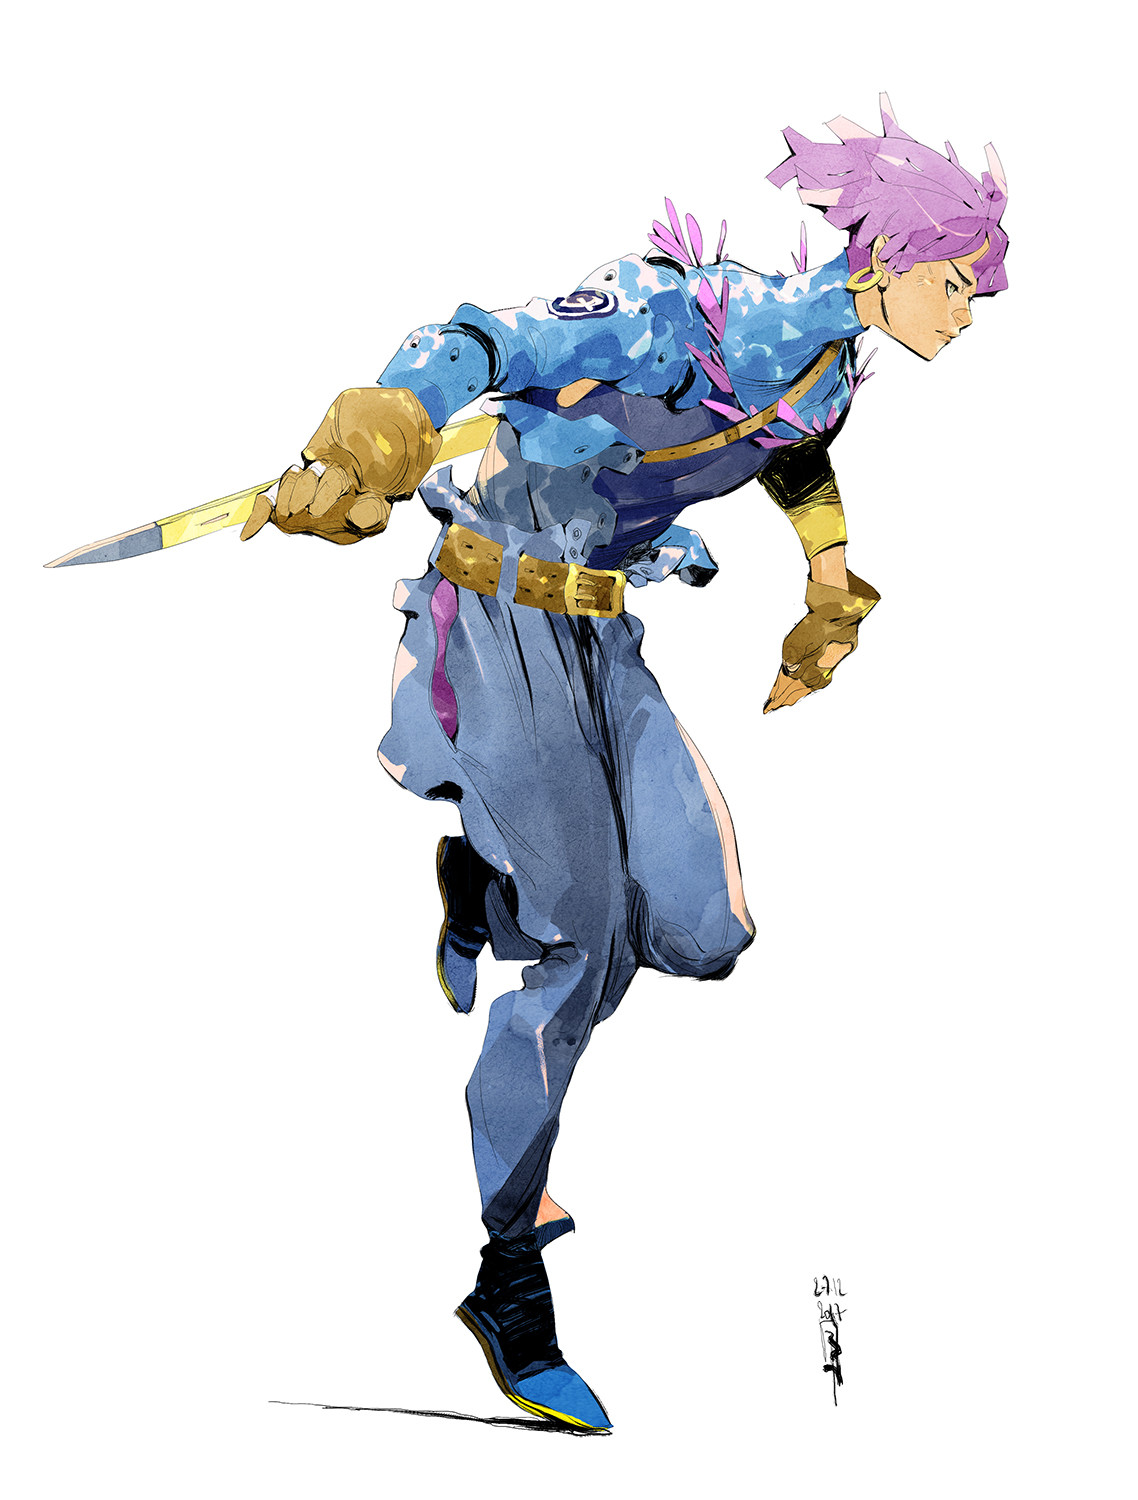 Boell oyino boell oyino character design futuretrunks artwork